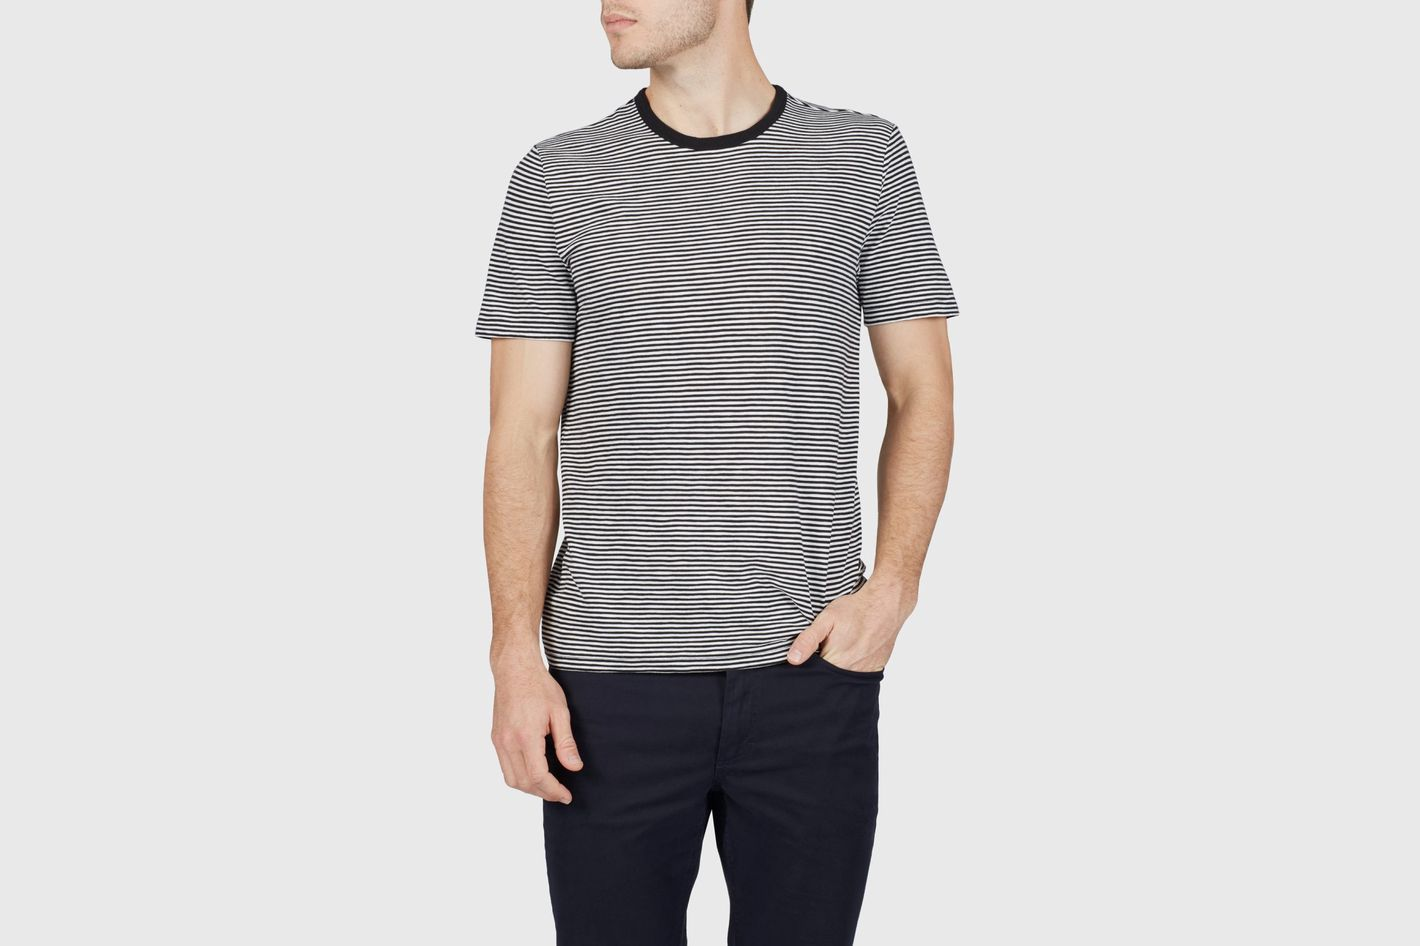 Everlane Cotton Slub Crew